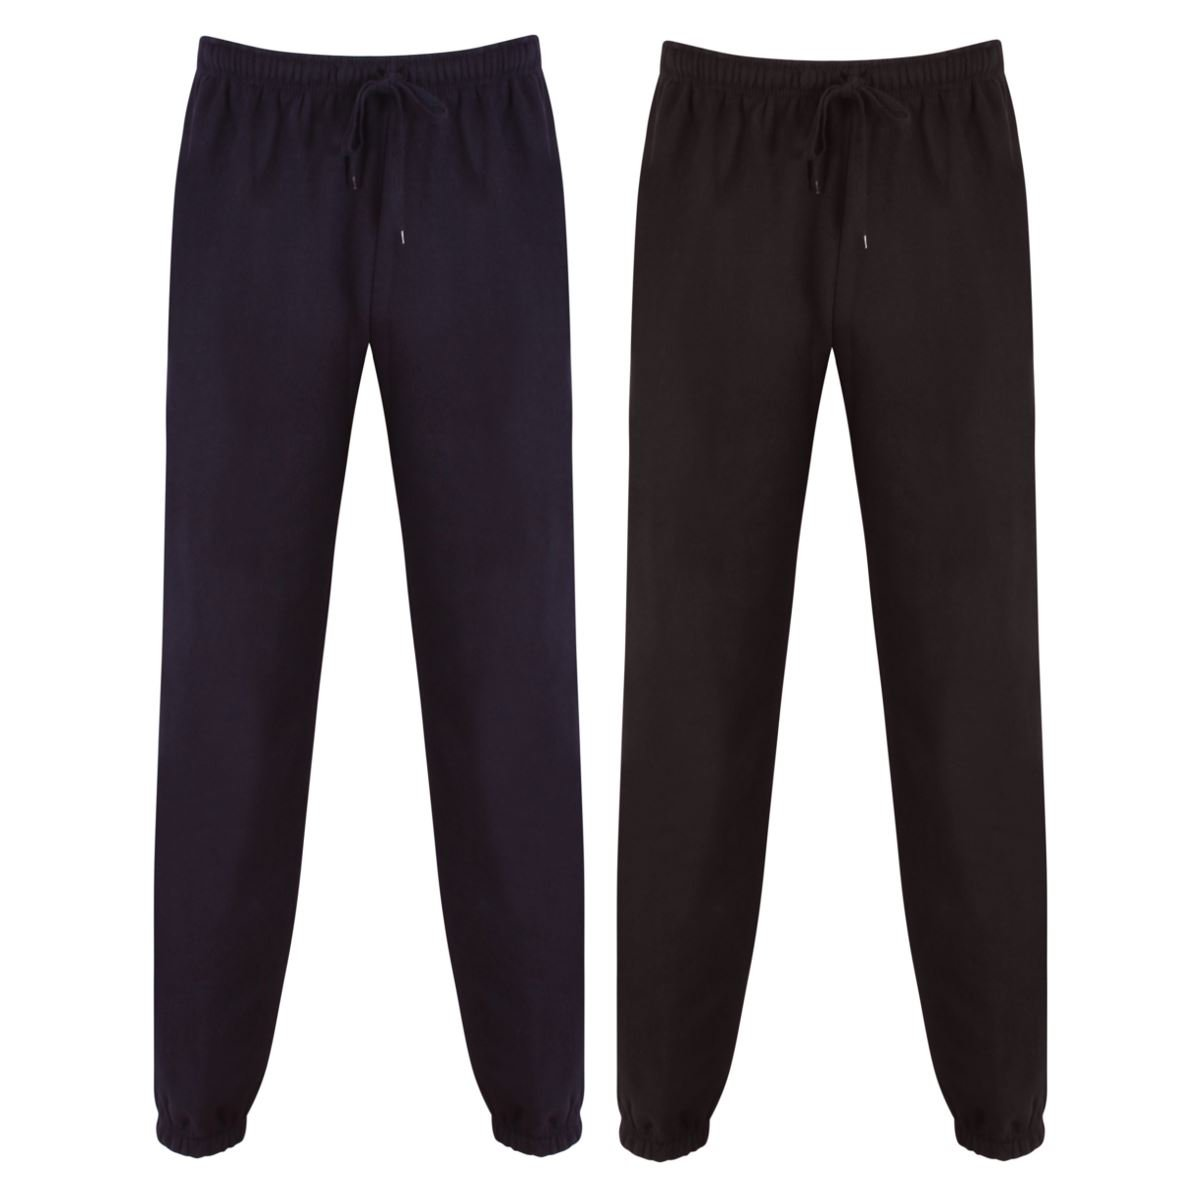 Gazelle Sports Mens Fleece Jog Pants Jogging Bottoms Trousers Joggers Cuffed Hem Zip Pockets